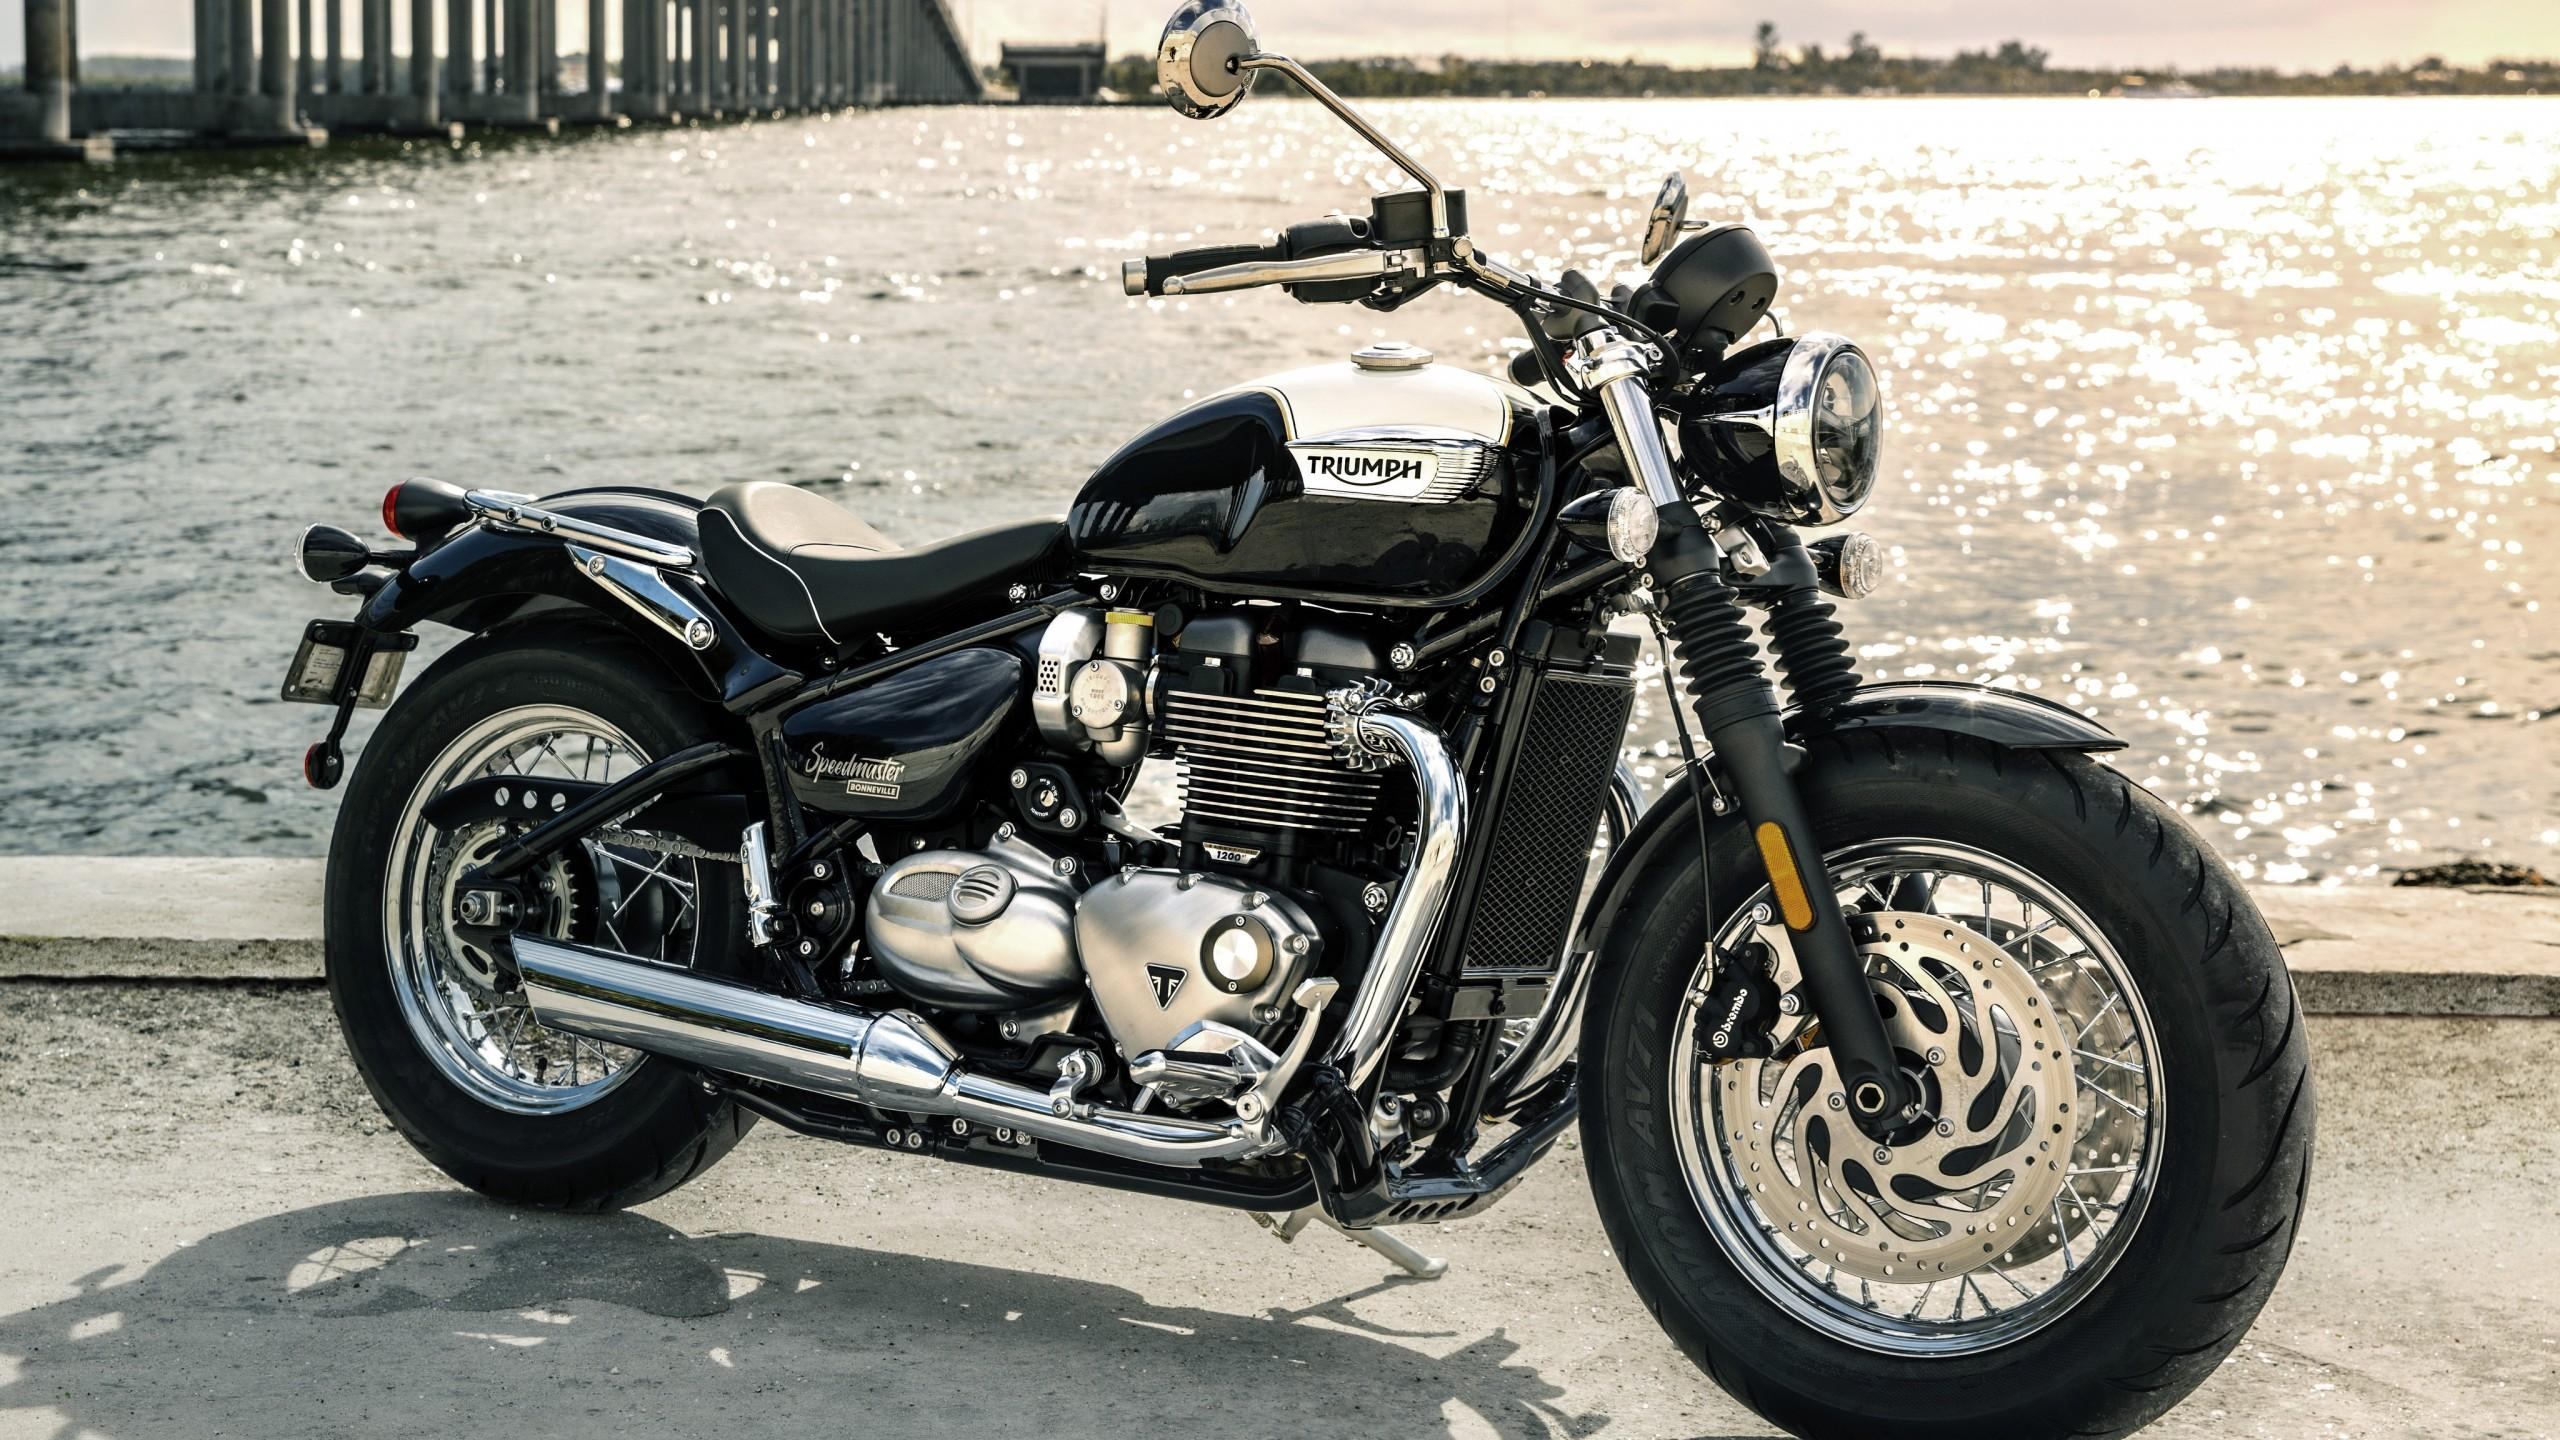 Triumph Cafe Racer Wallpapers Wallpaper Cave